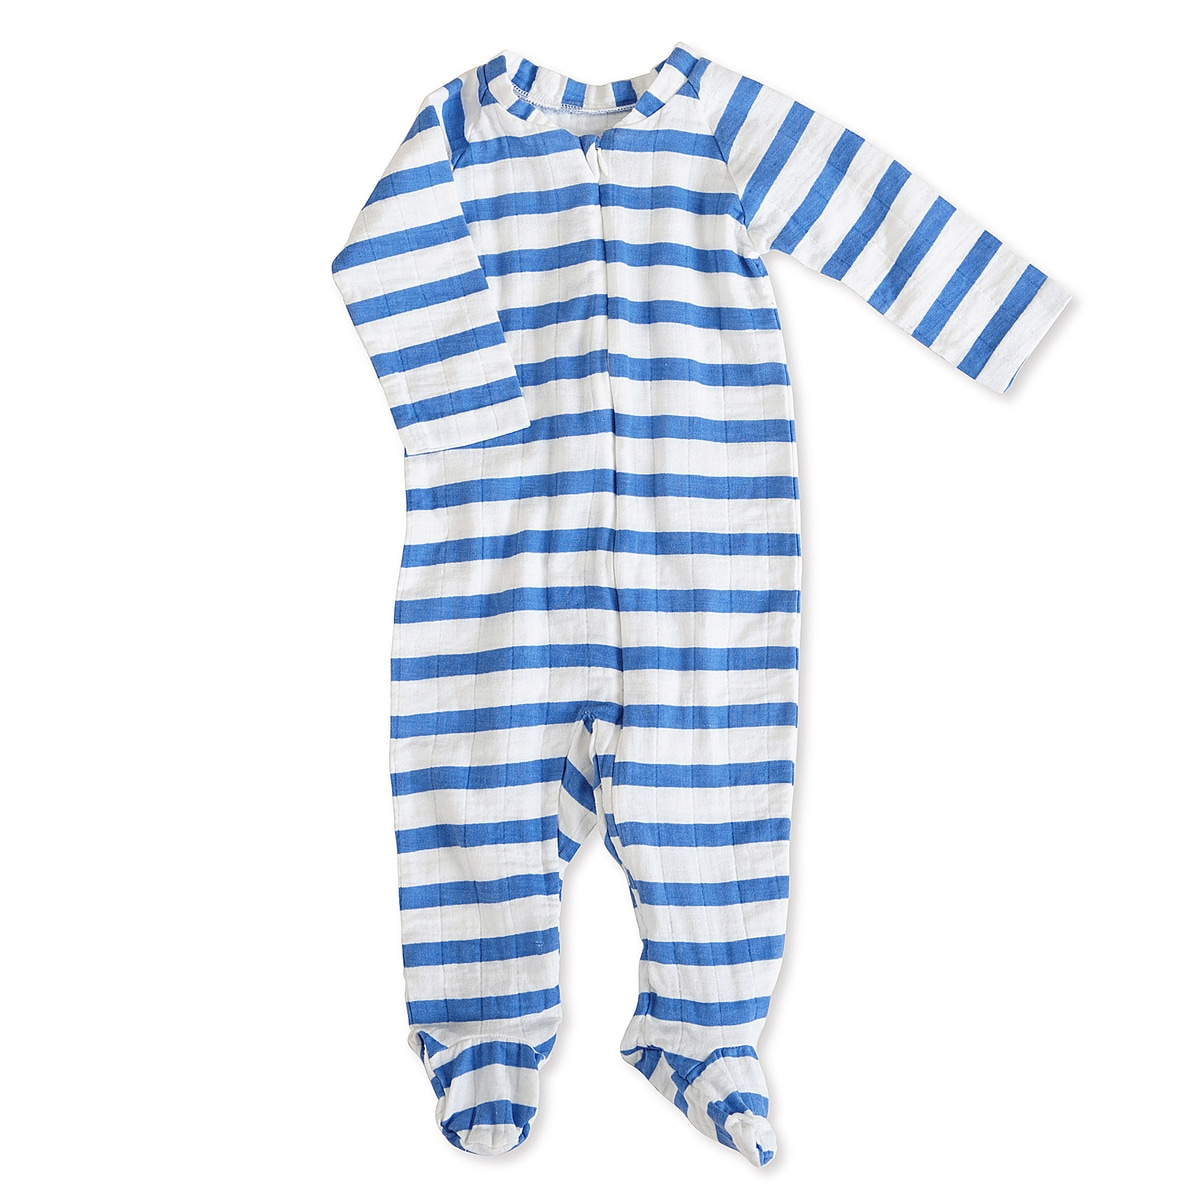 aden + anais Boys 3-6 Months Ultramarine Blazer Stripe Muslin Long-Sleeve Zip One Piece